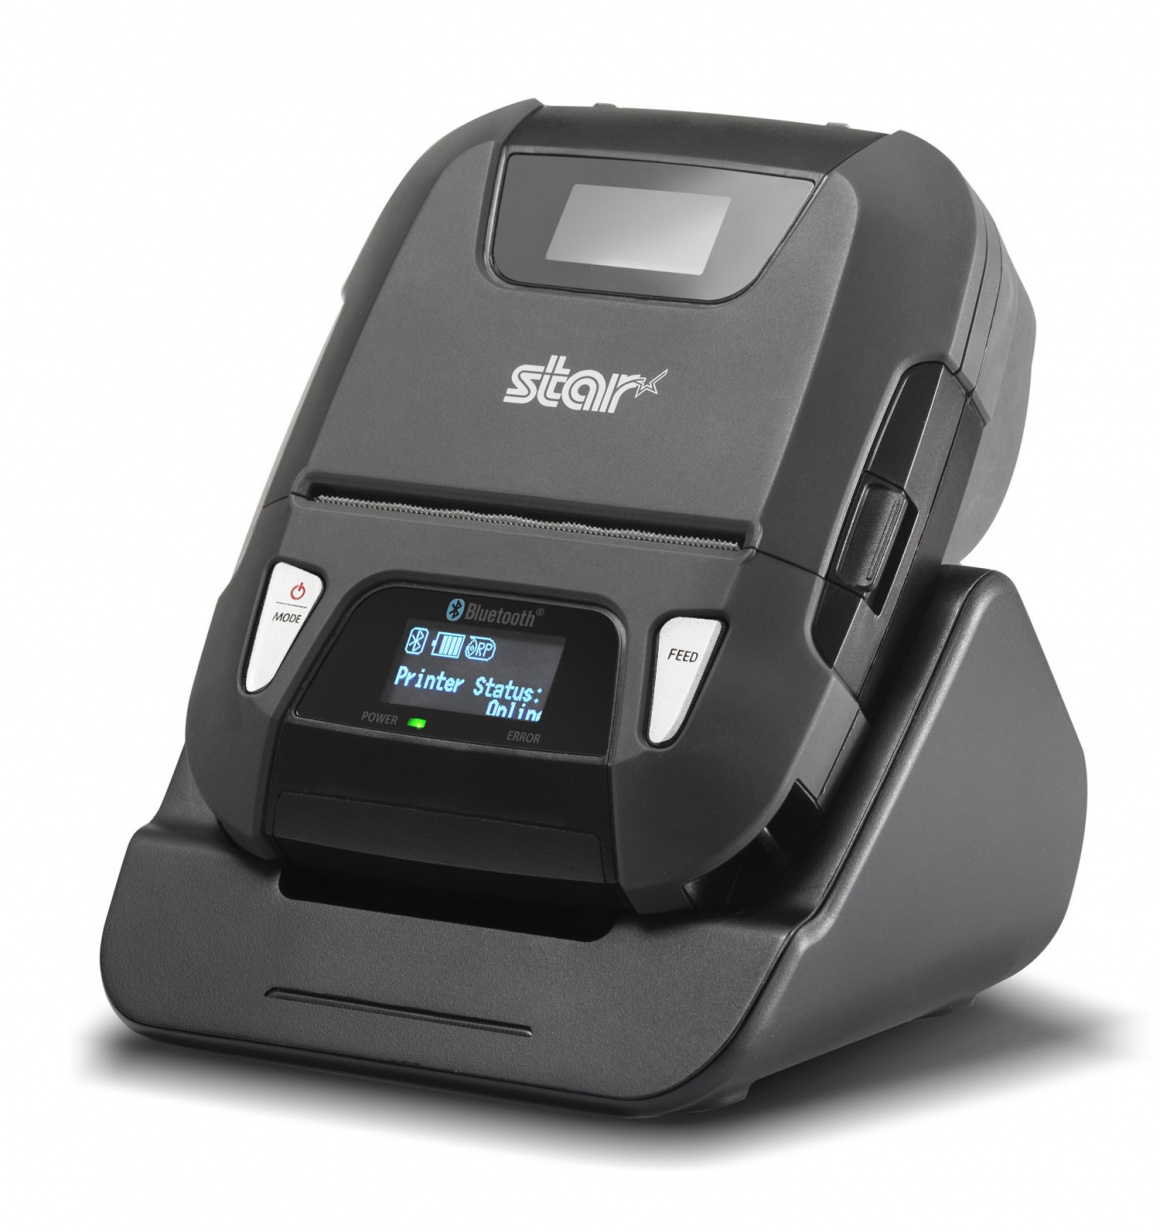 connected mobile receipt and label printer